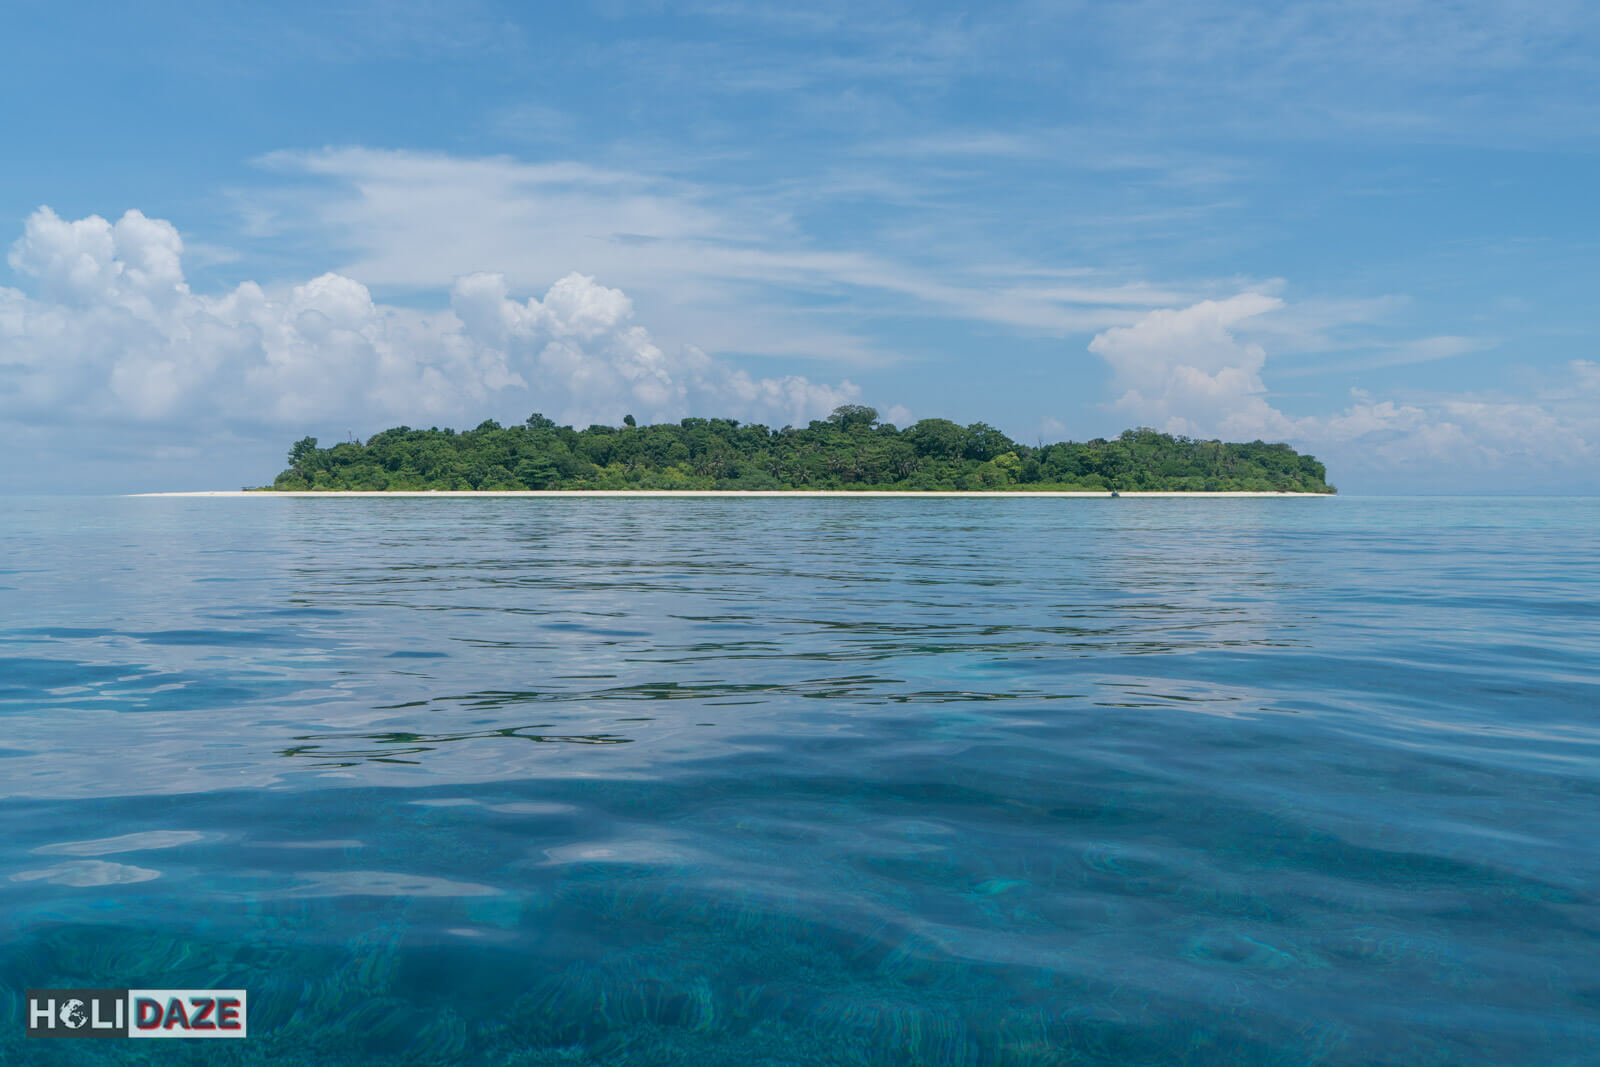 Sipadan Island is one of the top scuba diving spots in the world